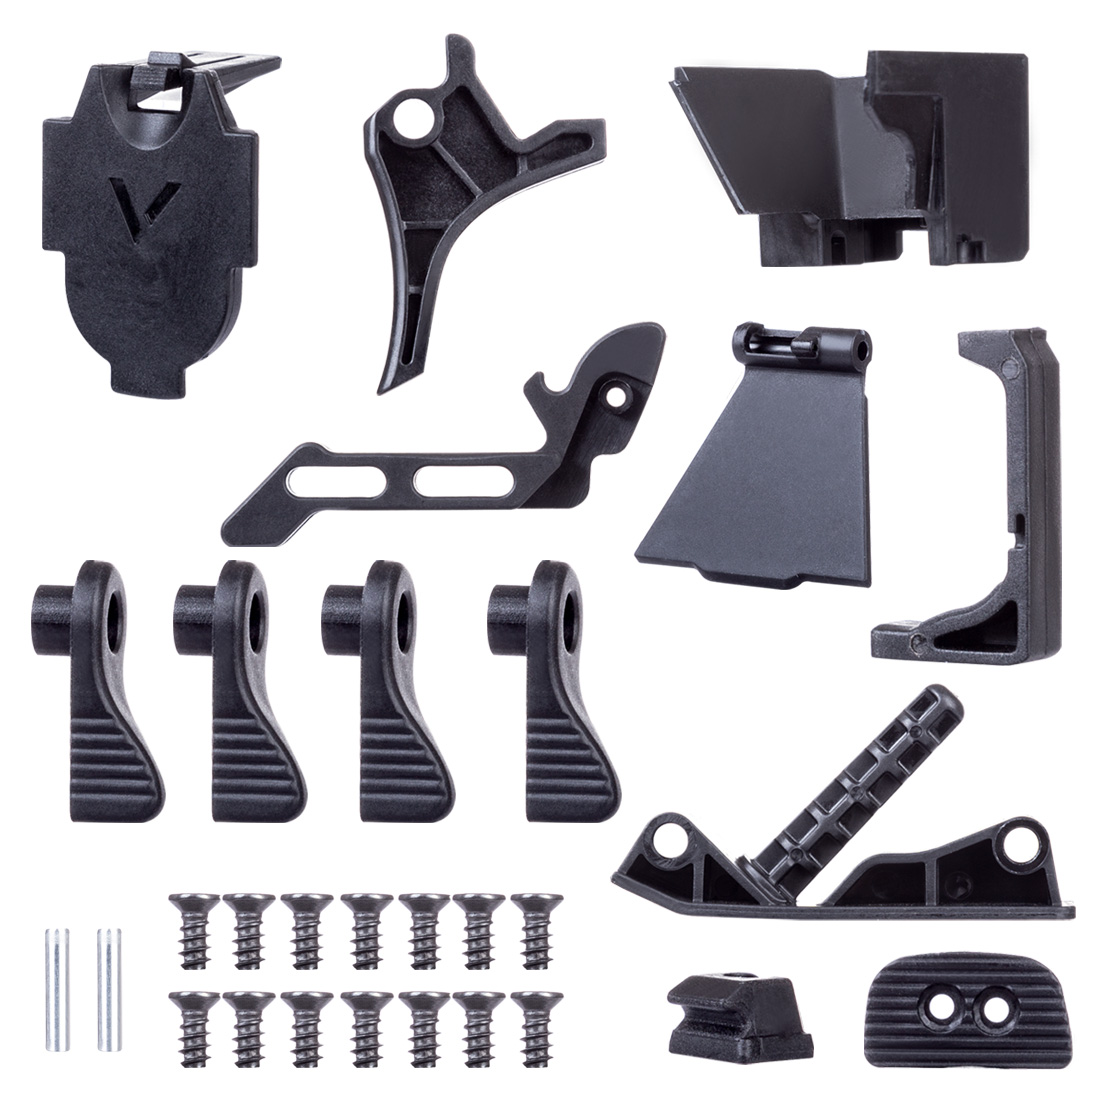 LH Vector Gen.2 Body Small Accessory Kit For LH Vector Gen.2 Water Gel Beads Blaster - Black